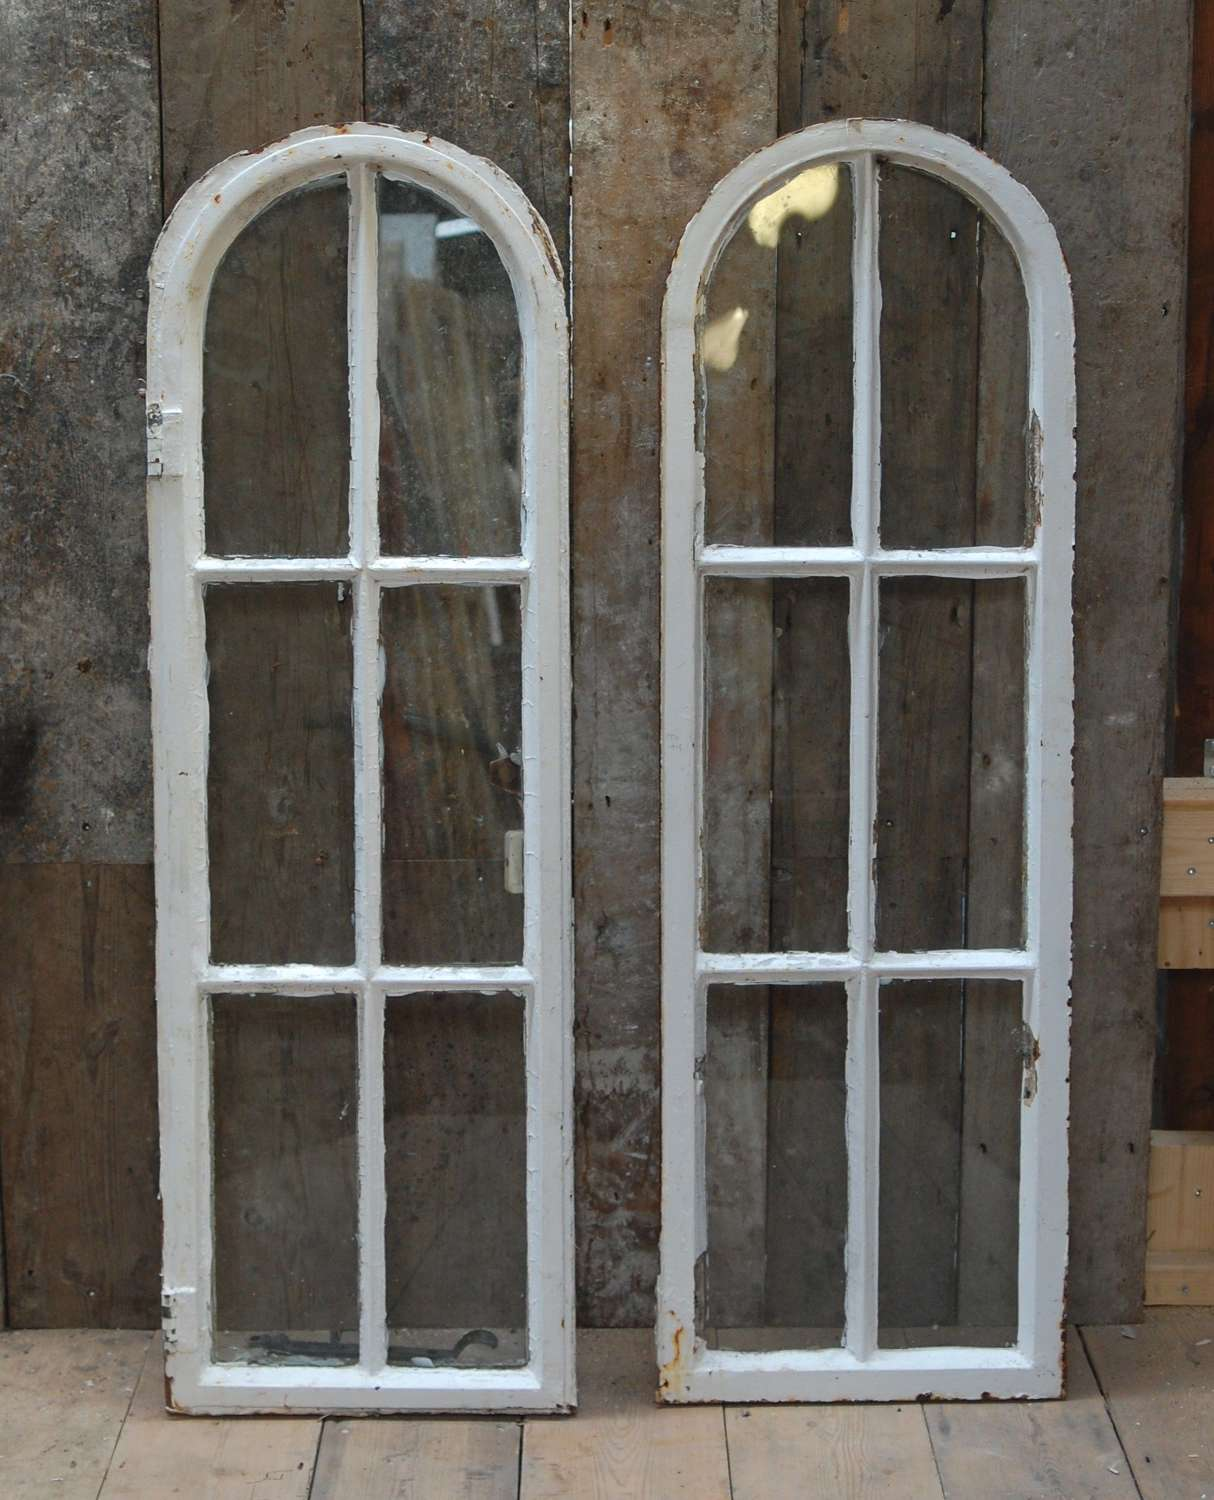 M1461 A PAIR OF PETITE RECLAIMED ARCHED CRITTALL WINDOWS 1 WITH FRAME